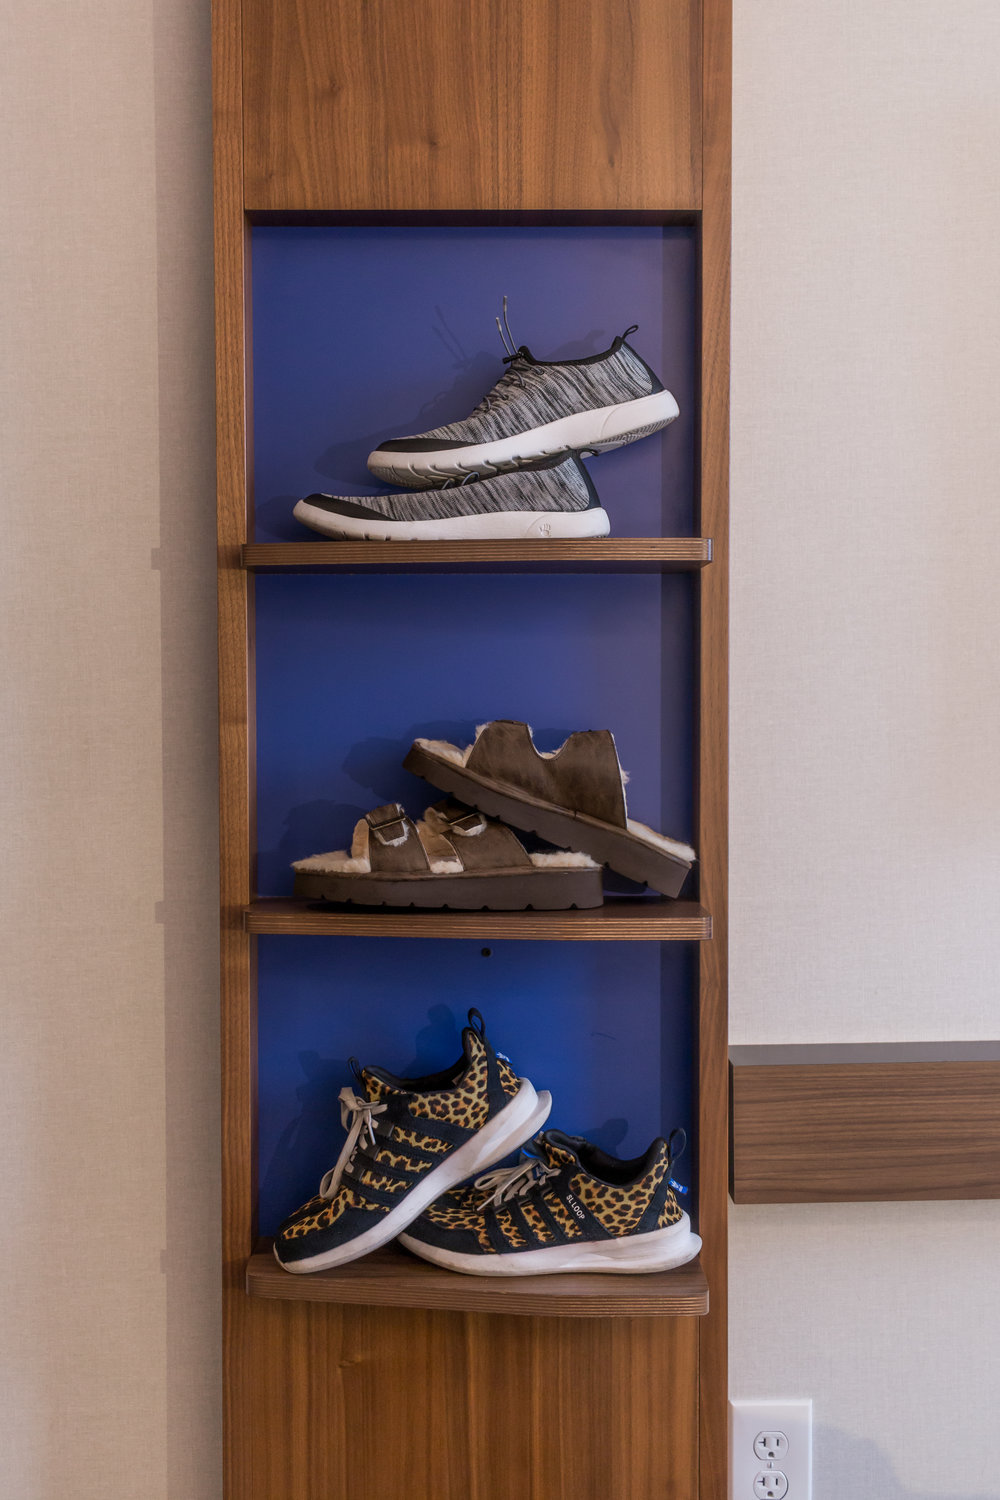 Just one of many shelving areas inside the room